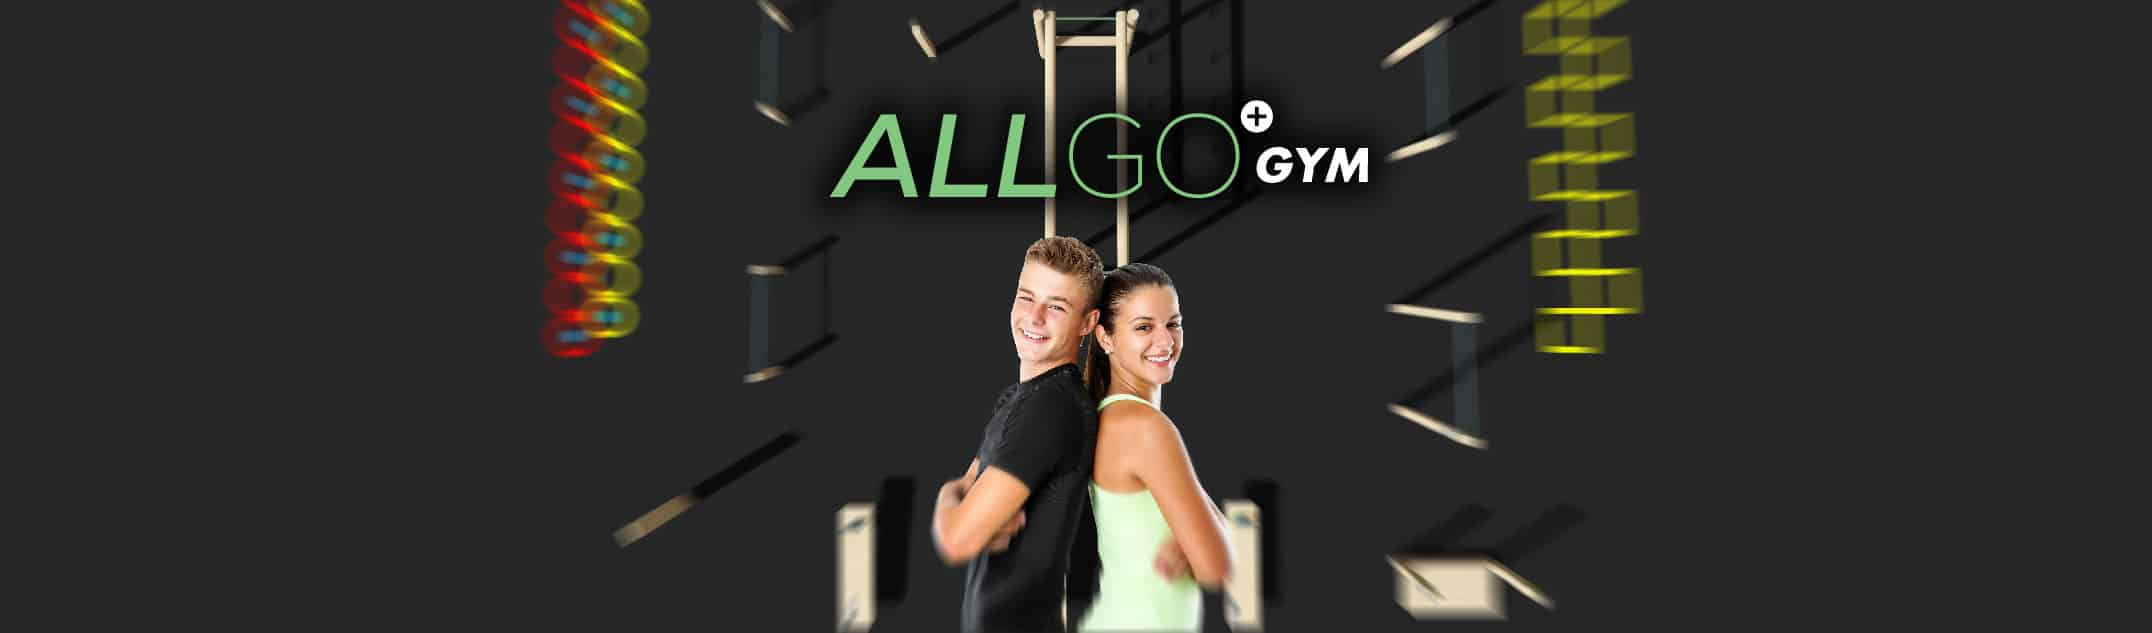 ALLGO-GYM---header-banner-wide